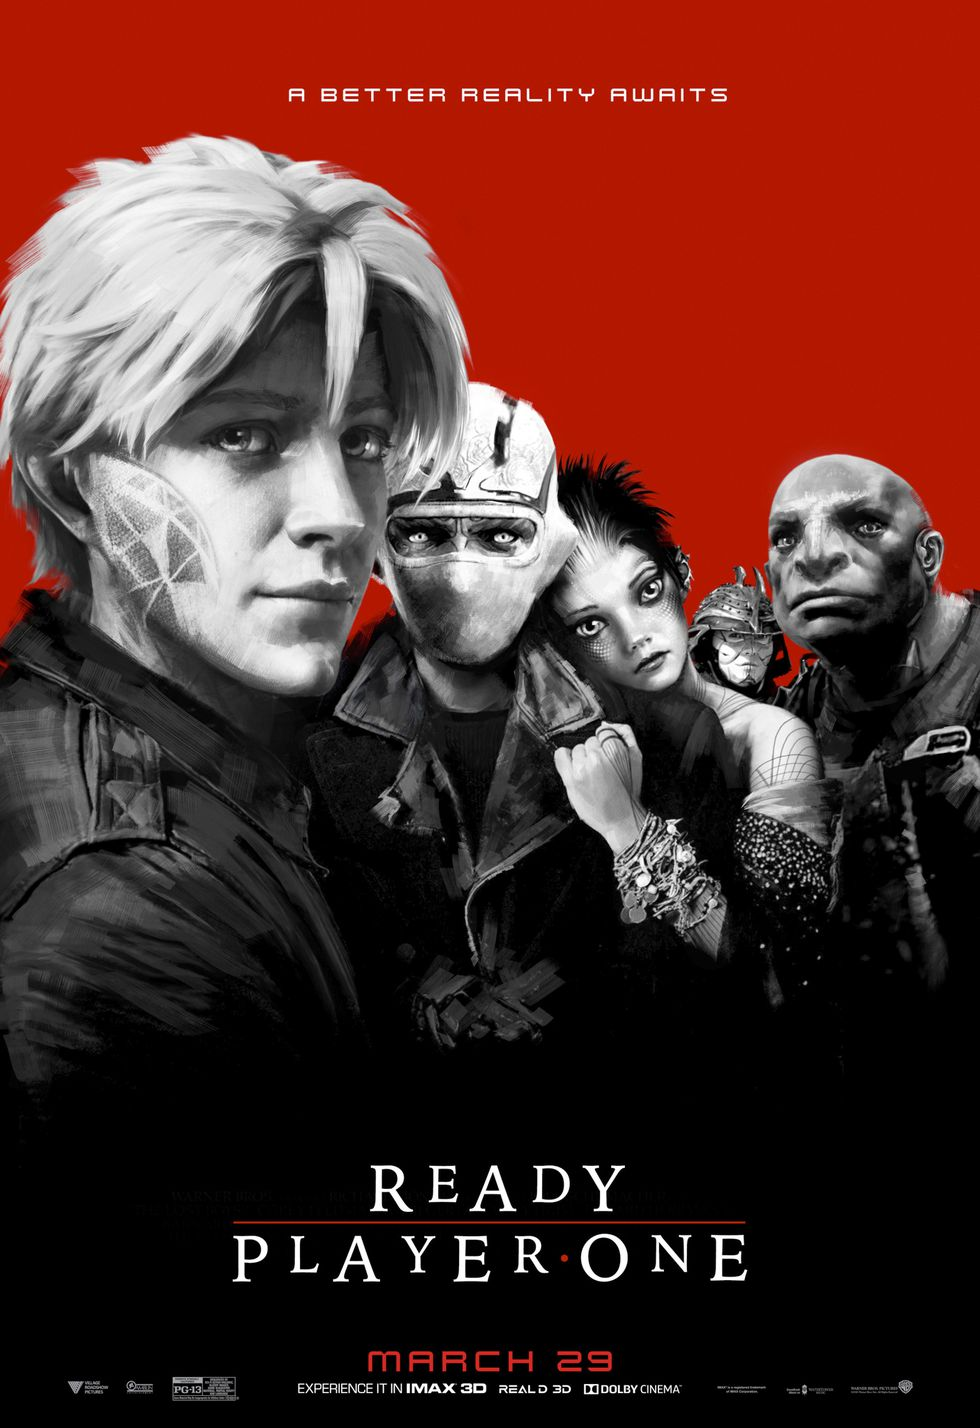 readyplayerone-tributeposter-highres-lostboys-1520373880.jpg